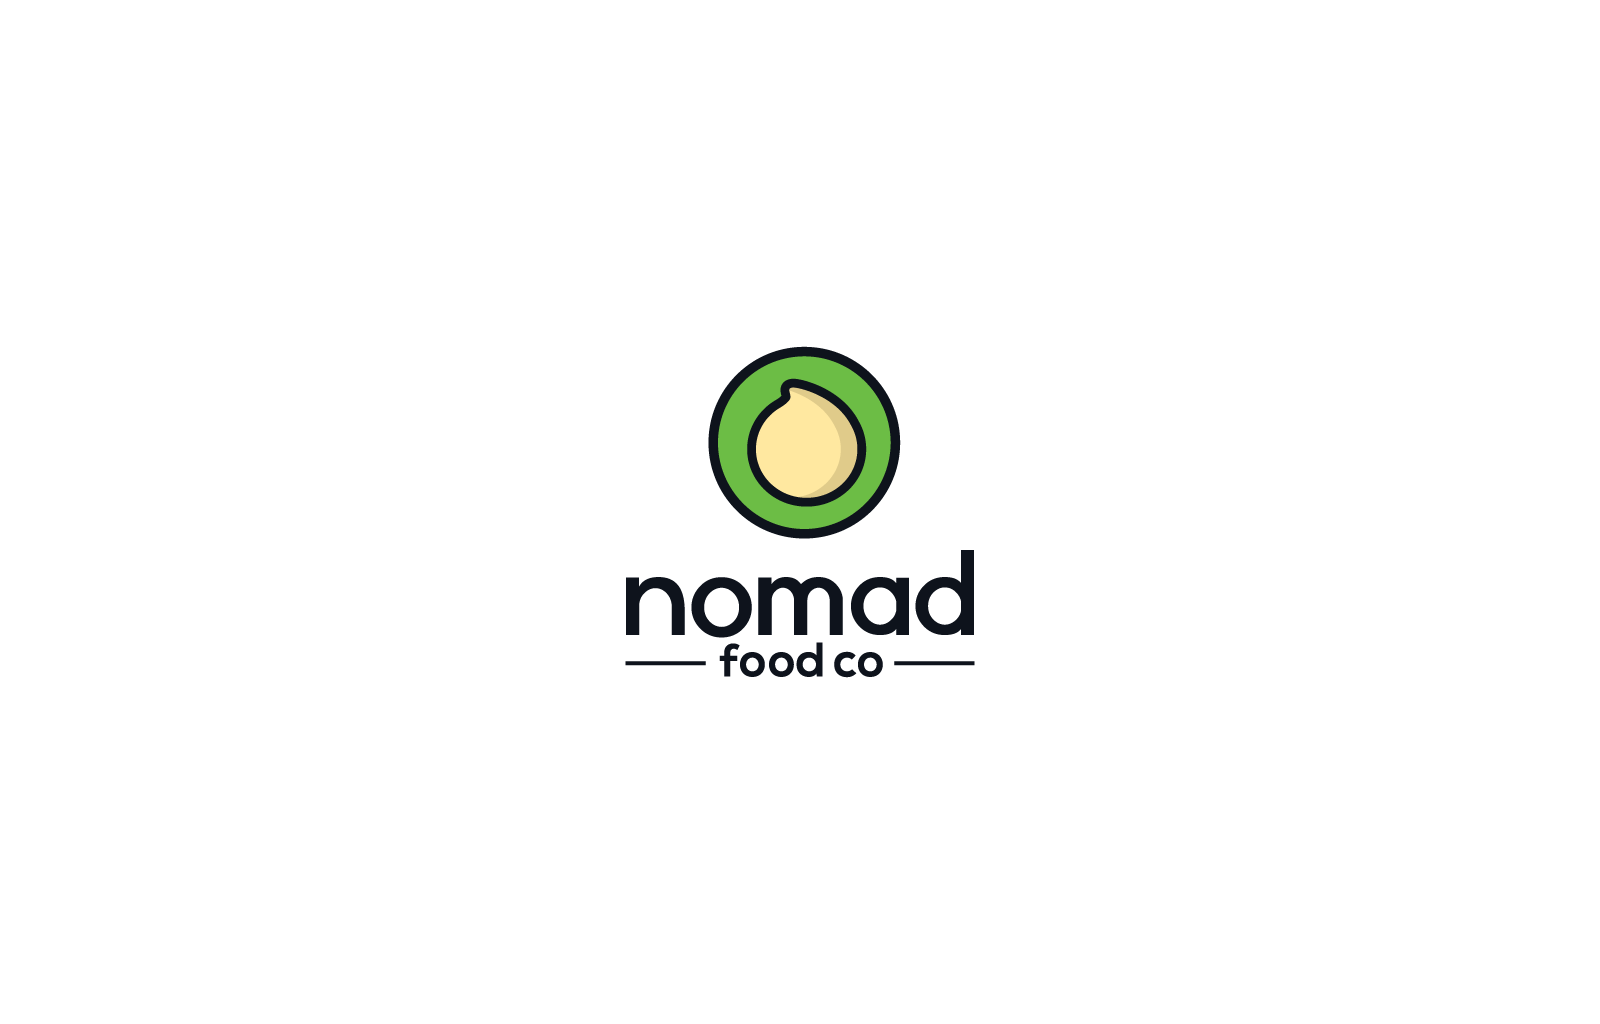 Create an eye-catching logo for nomad food co., producers of Mediterranean cuisine